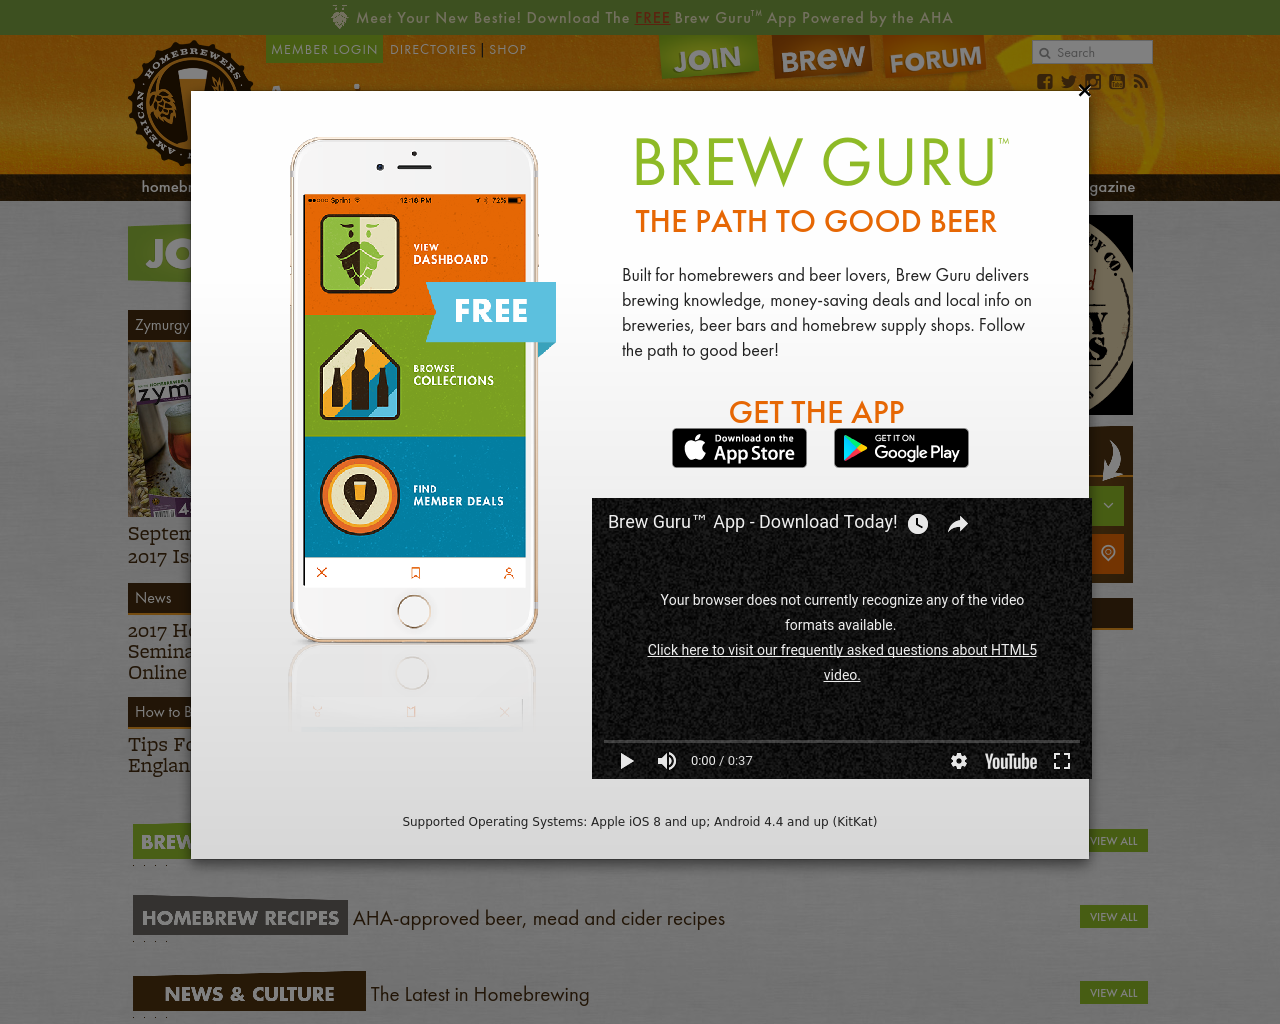 American-Homebrewers-Association-Advertising-Reviews-Pricing